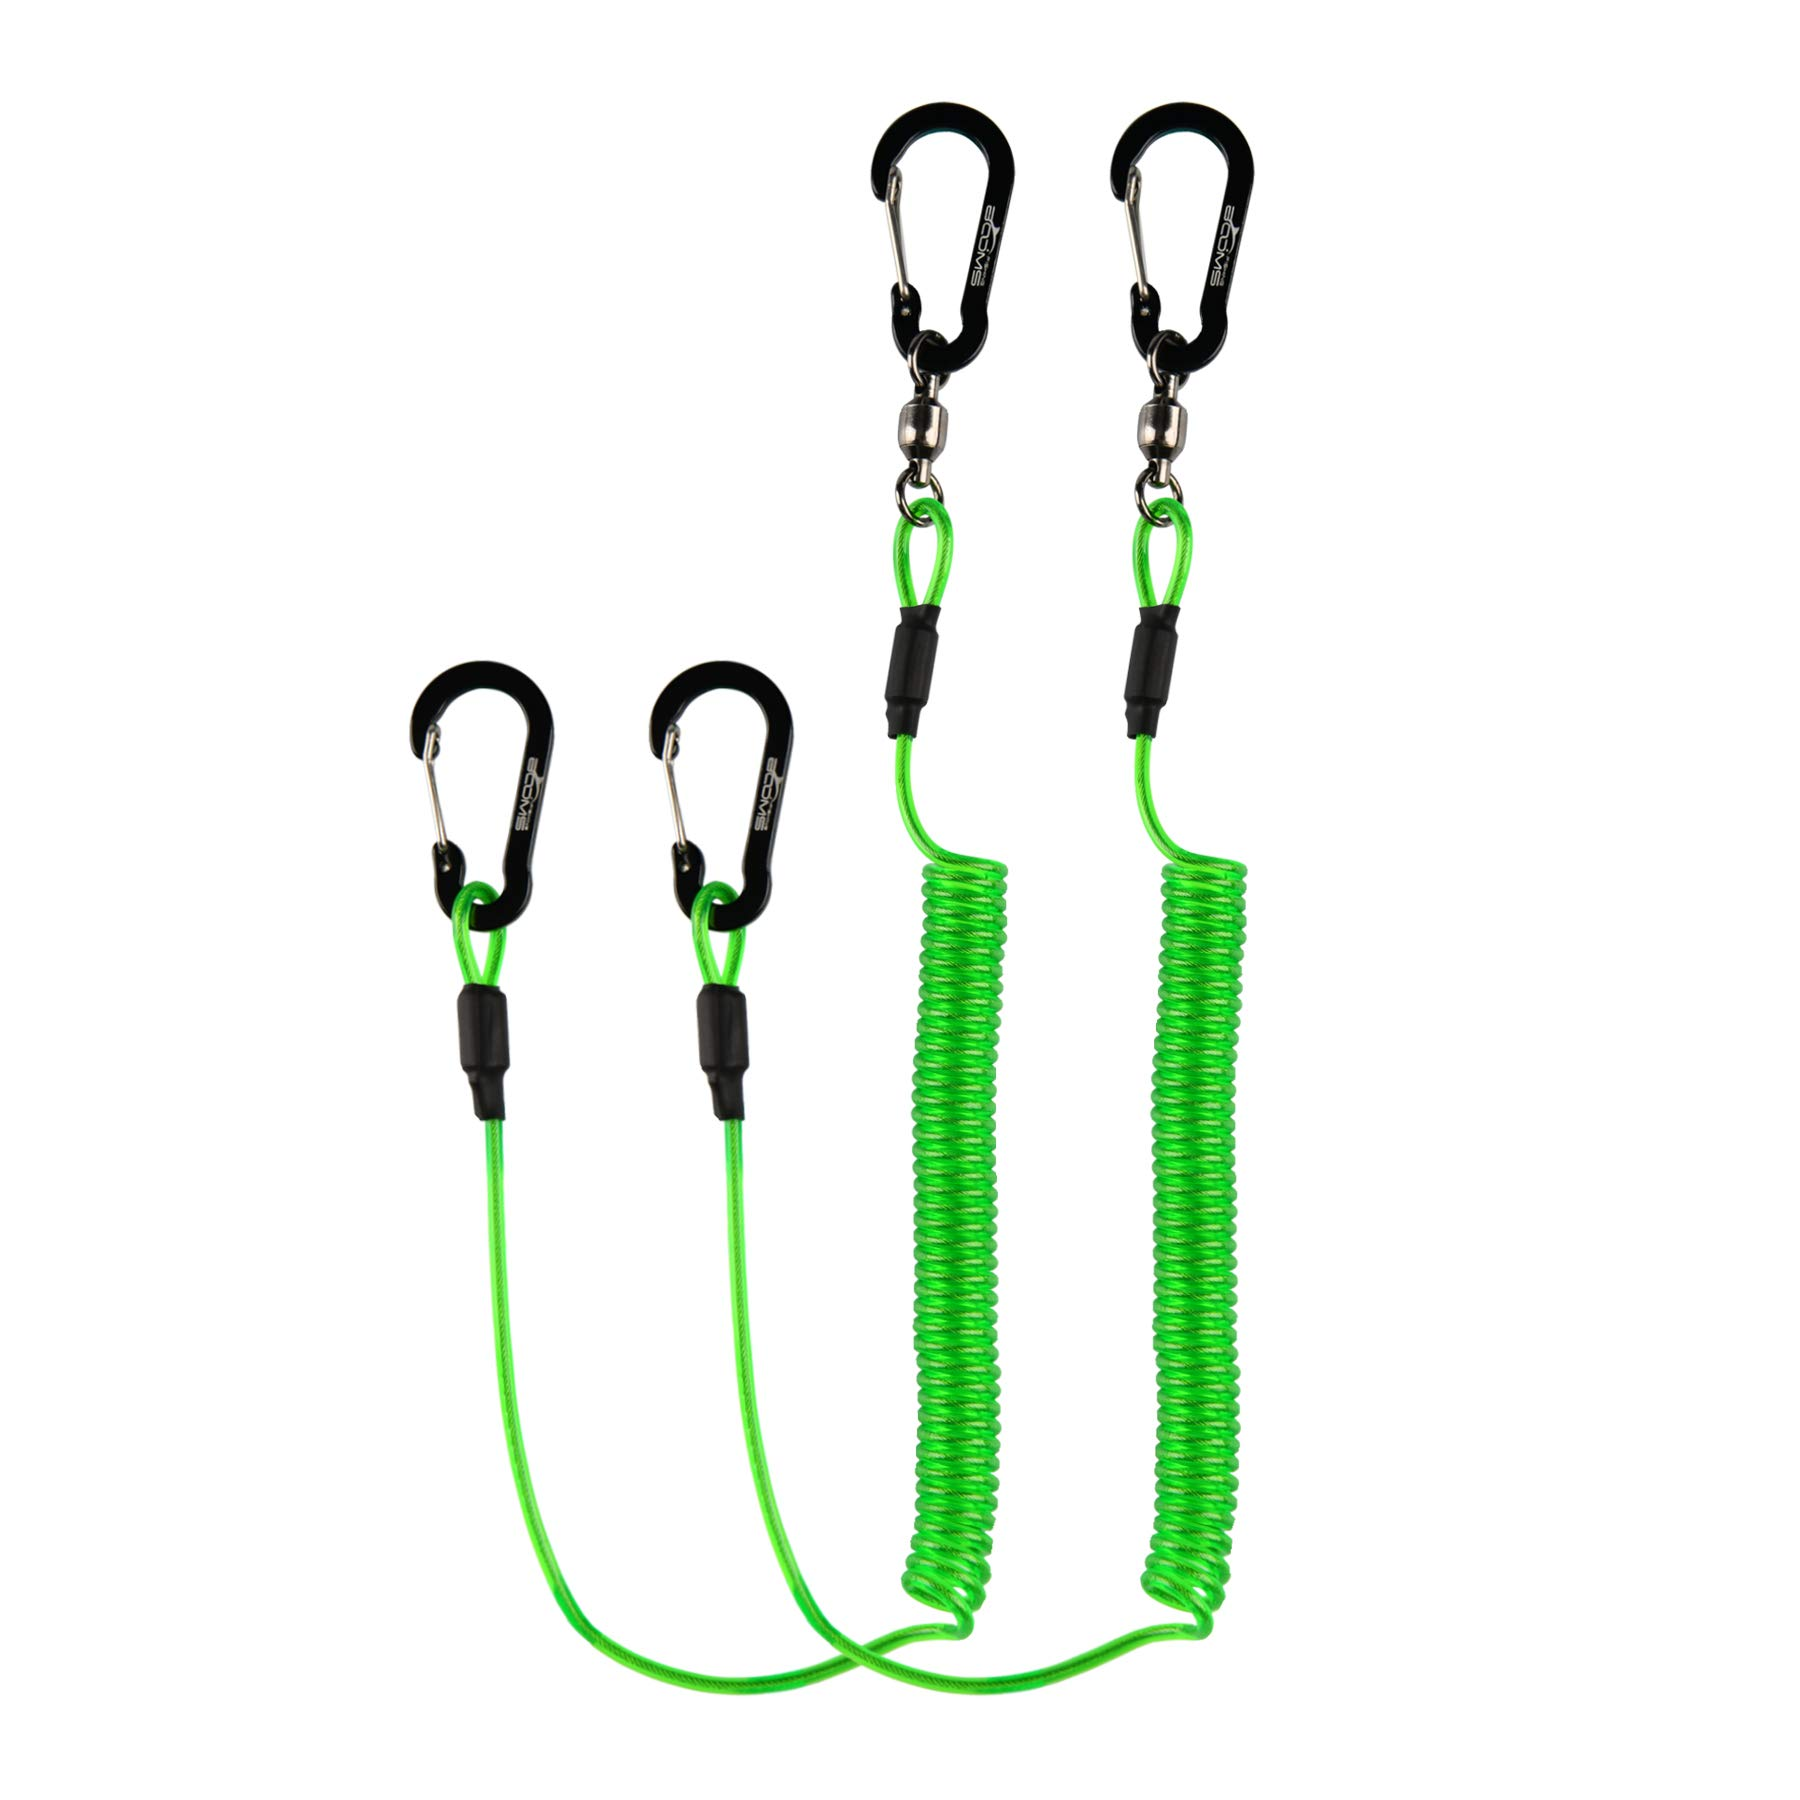 Booms Fishing T02 Heavy Duty Fishing Lanyard for Fishing Tools/Rods/Paddles